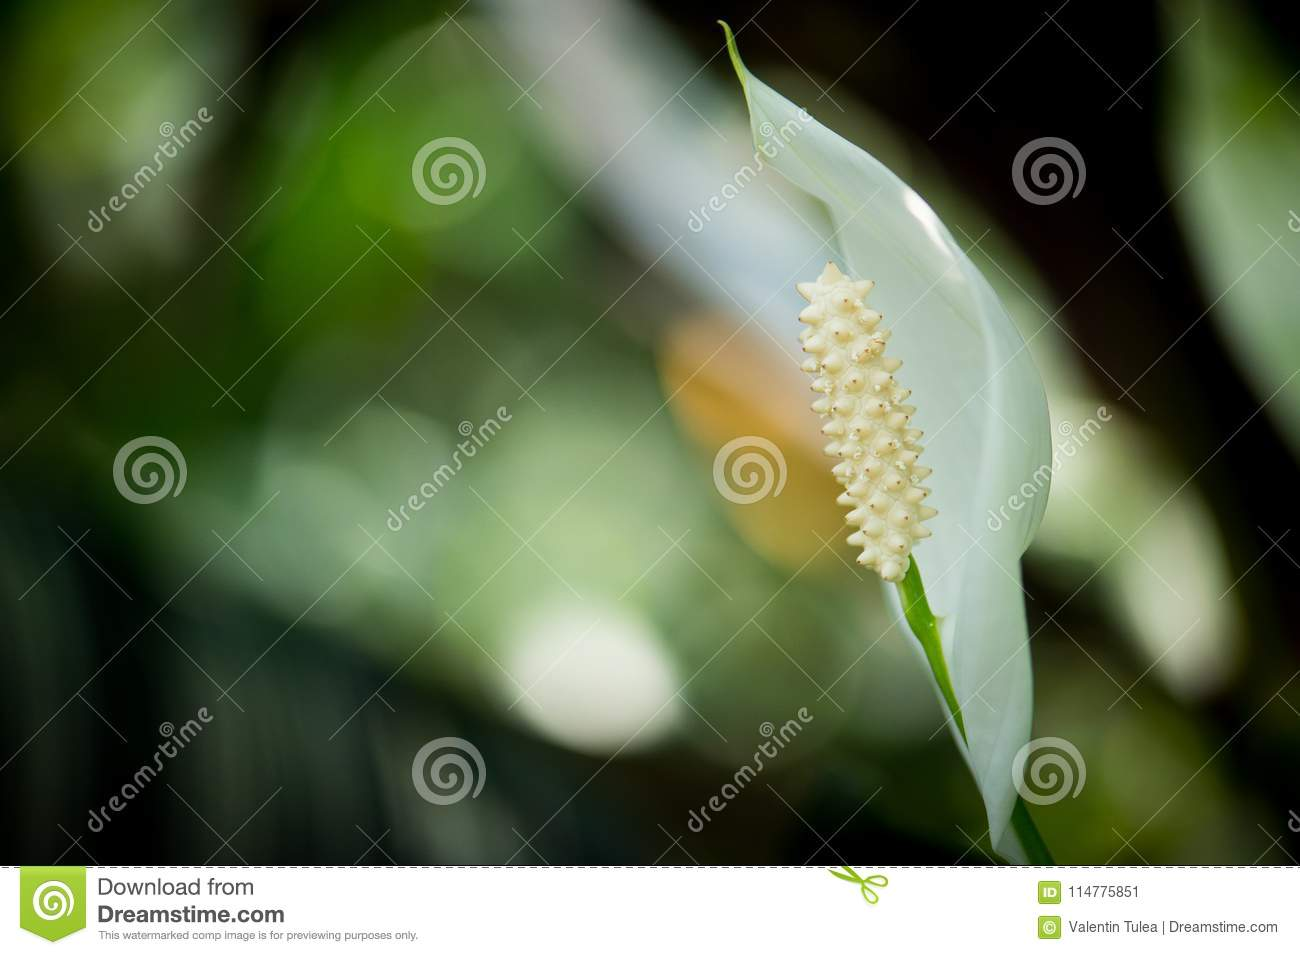 Detail of a white calla lily